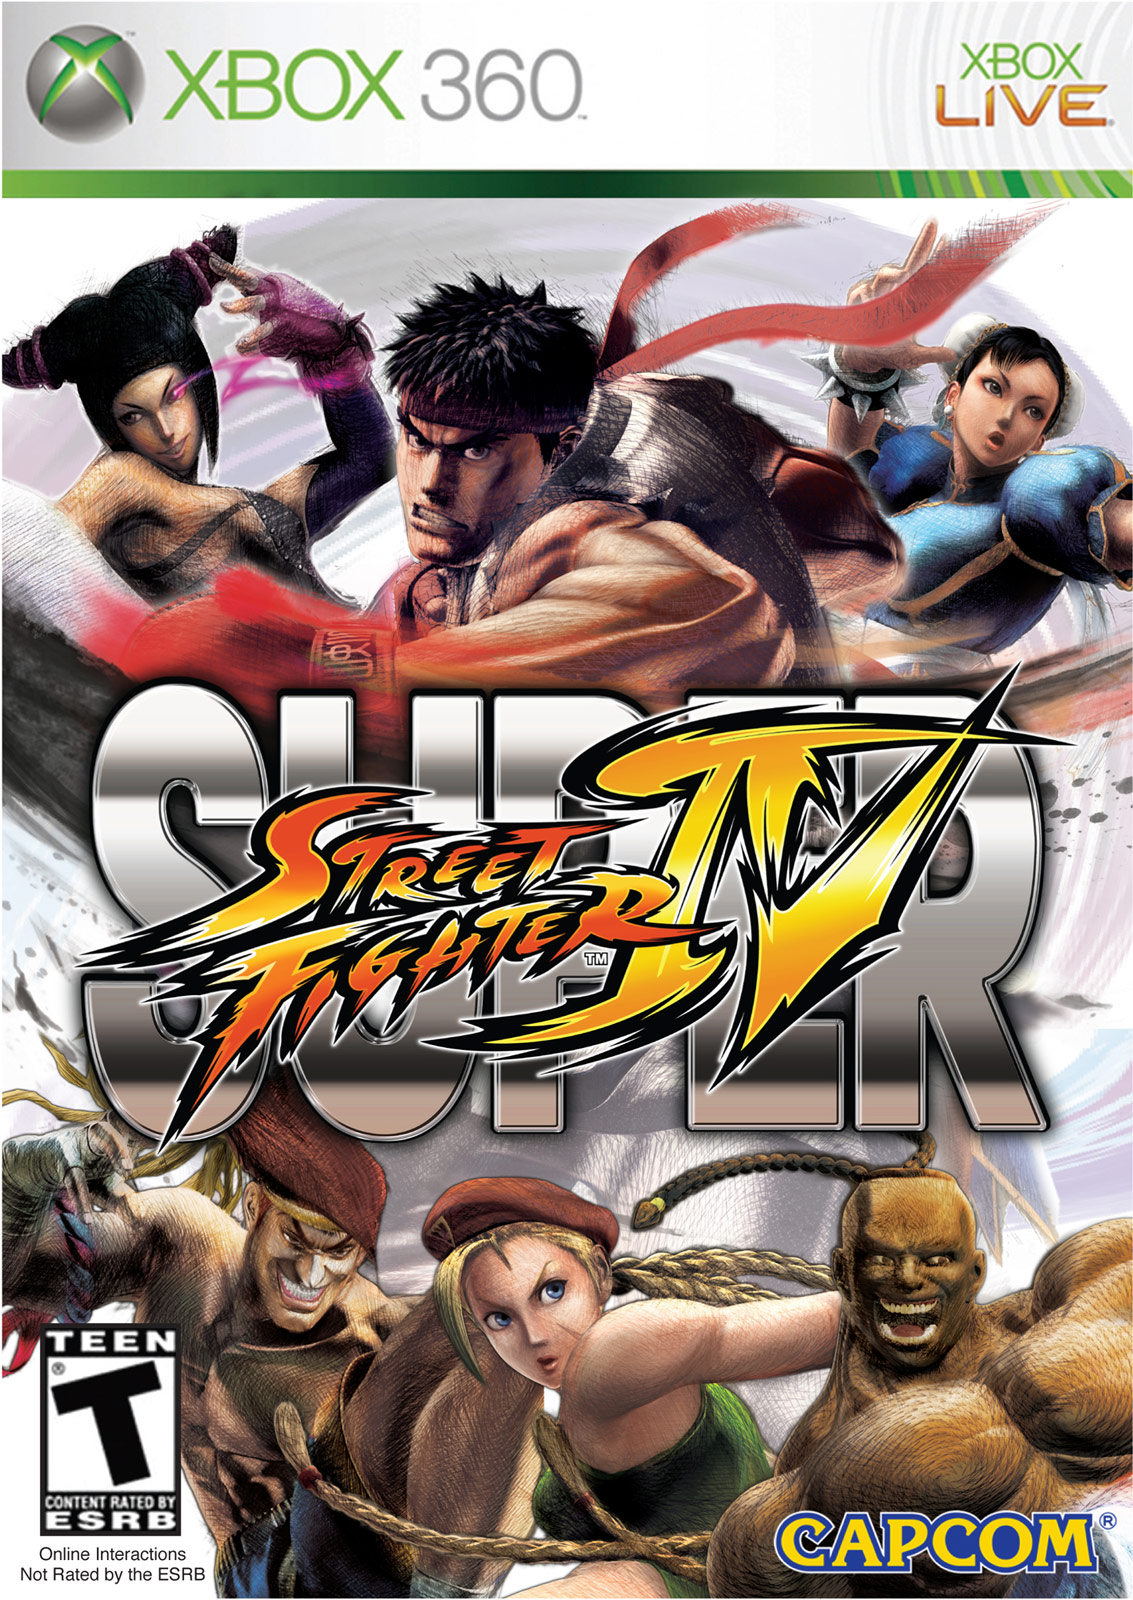 Cover art for Super Street Fighter 4 on the XBox 360